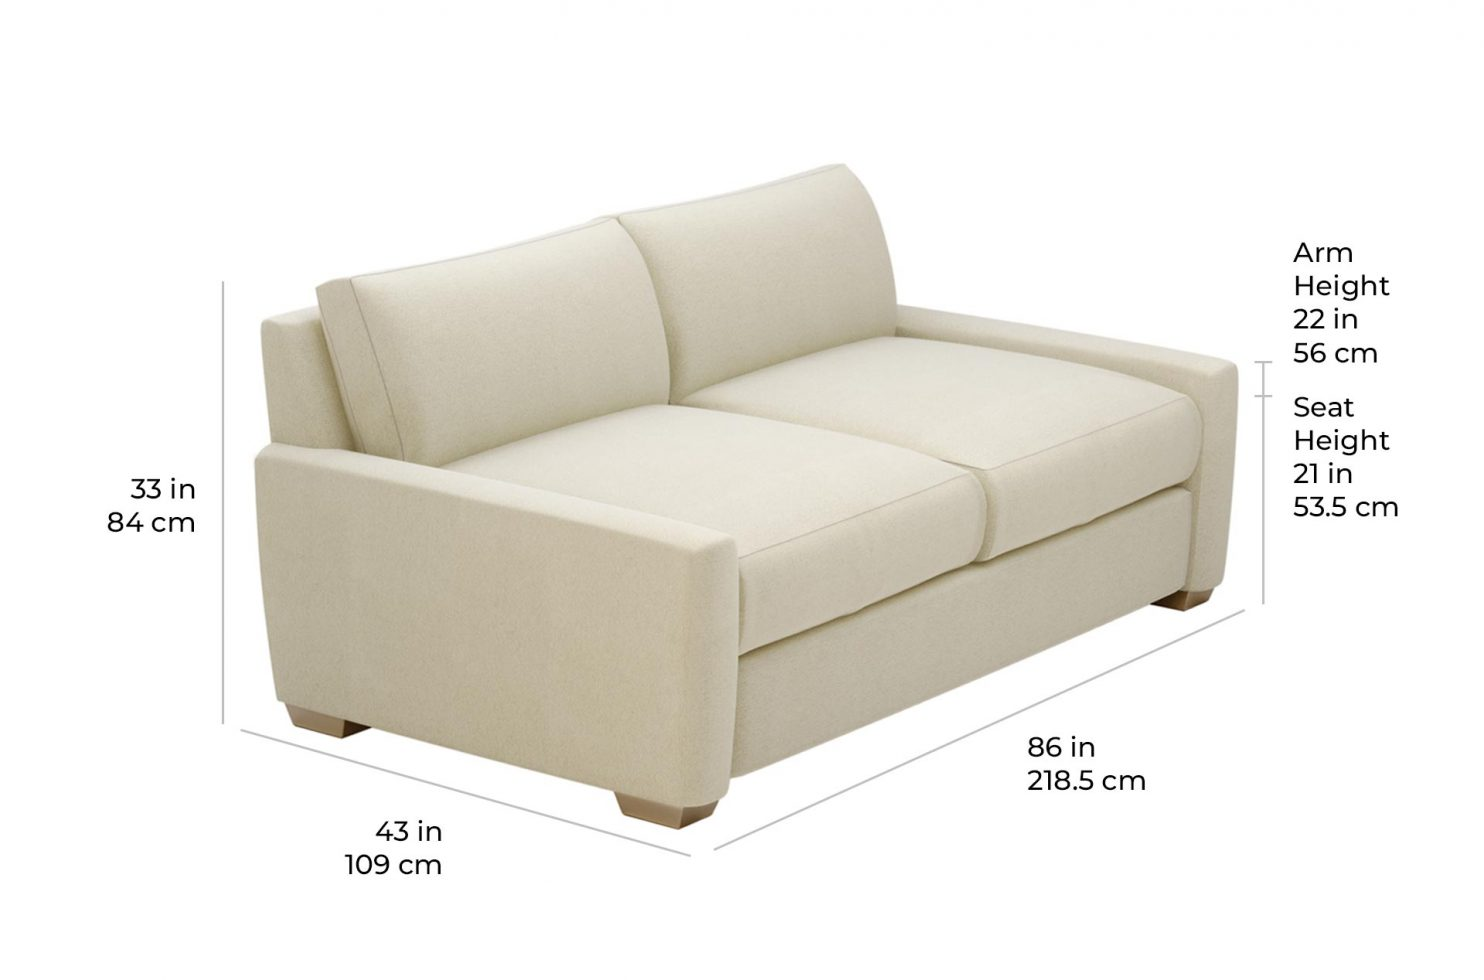 fizz imperial apartment sofa 105FT004P2 SS scale dims